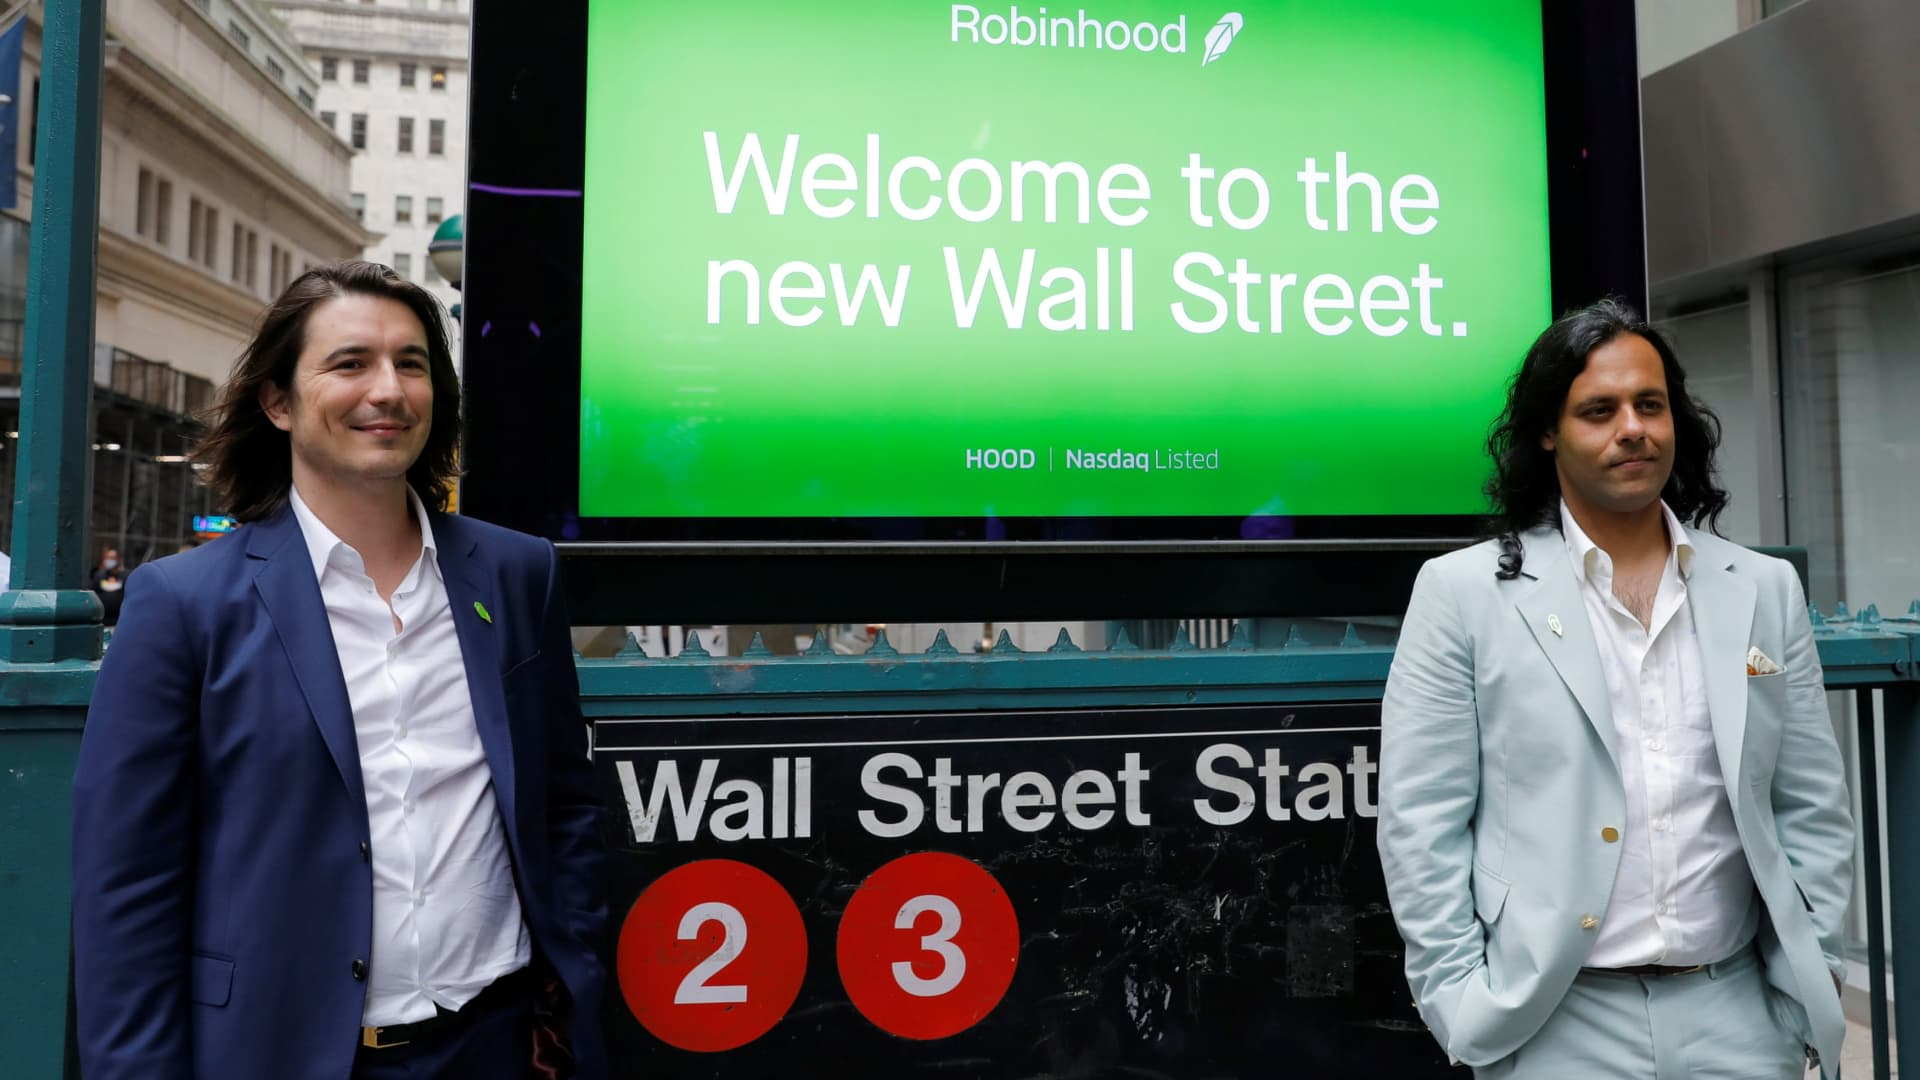 Robinhood Markets, Inc. CEO and co-founder Vlad Tenev and co-founder Baiju Bhatt pose with Robinhood signage on Wall Street after the company's IPO in New York City, U.S., July 29, 2021.